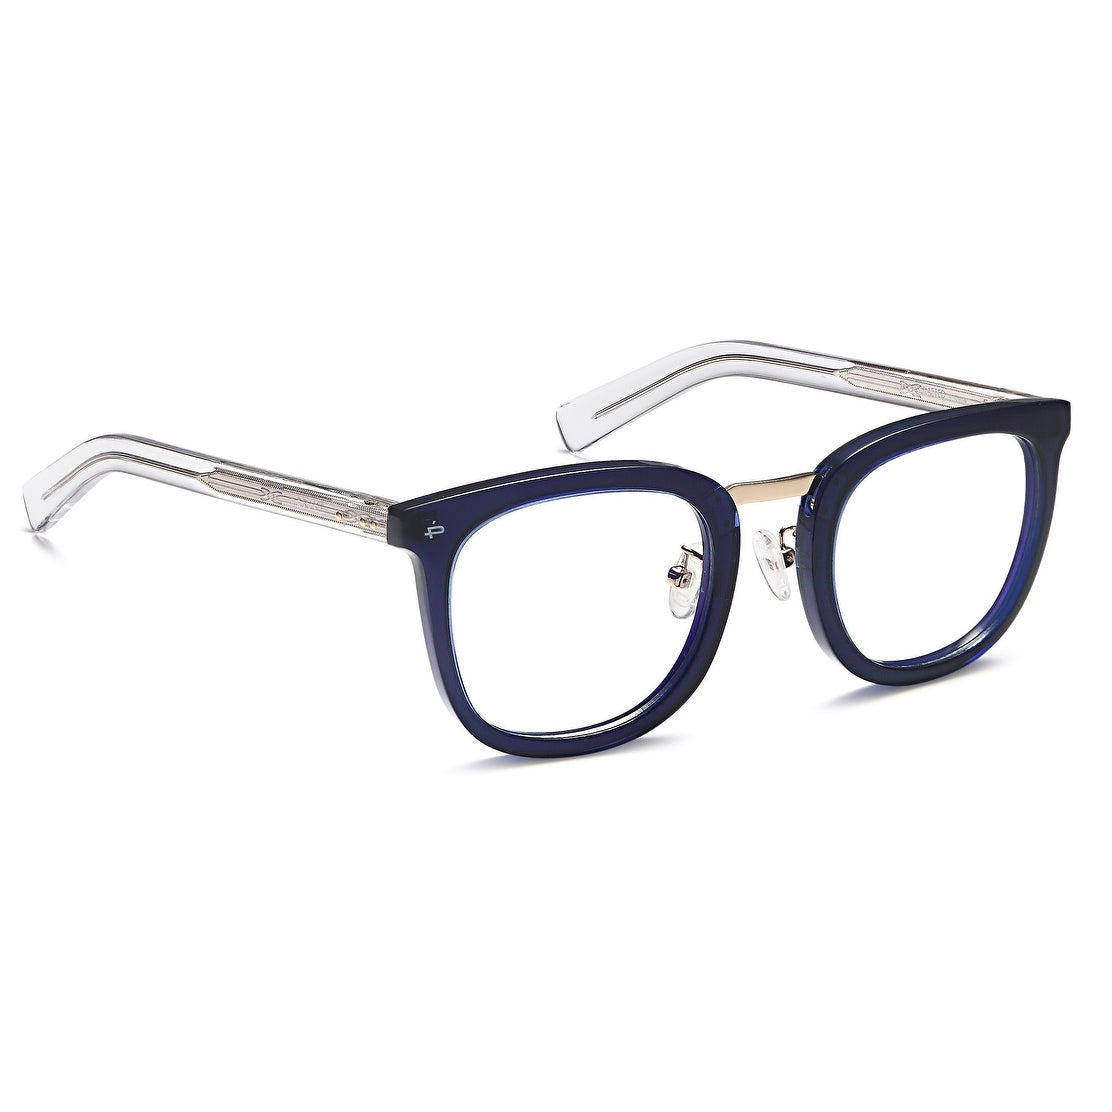 492814d81a Shop PRIVÉ REVAUX The Alchemist Limited Edition Handcrafted Designer  Eyeglasses With Anti Blue-Light Blocking Lenses - Free Shipping On Orders  Over  45 ...